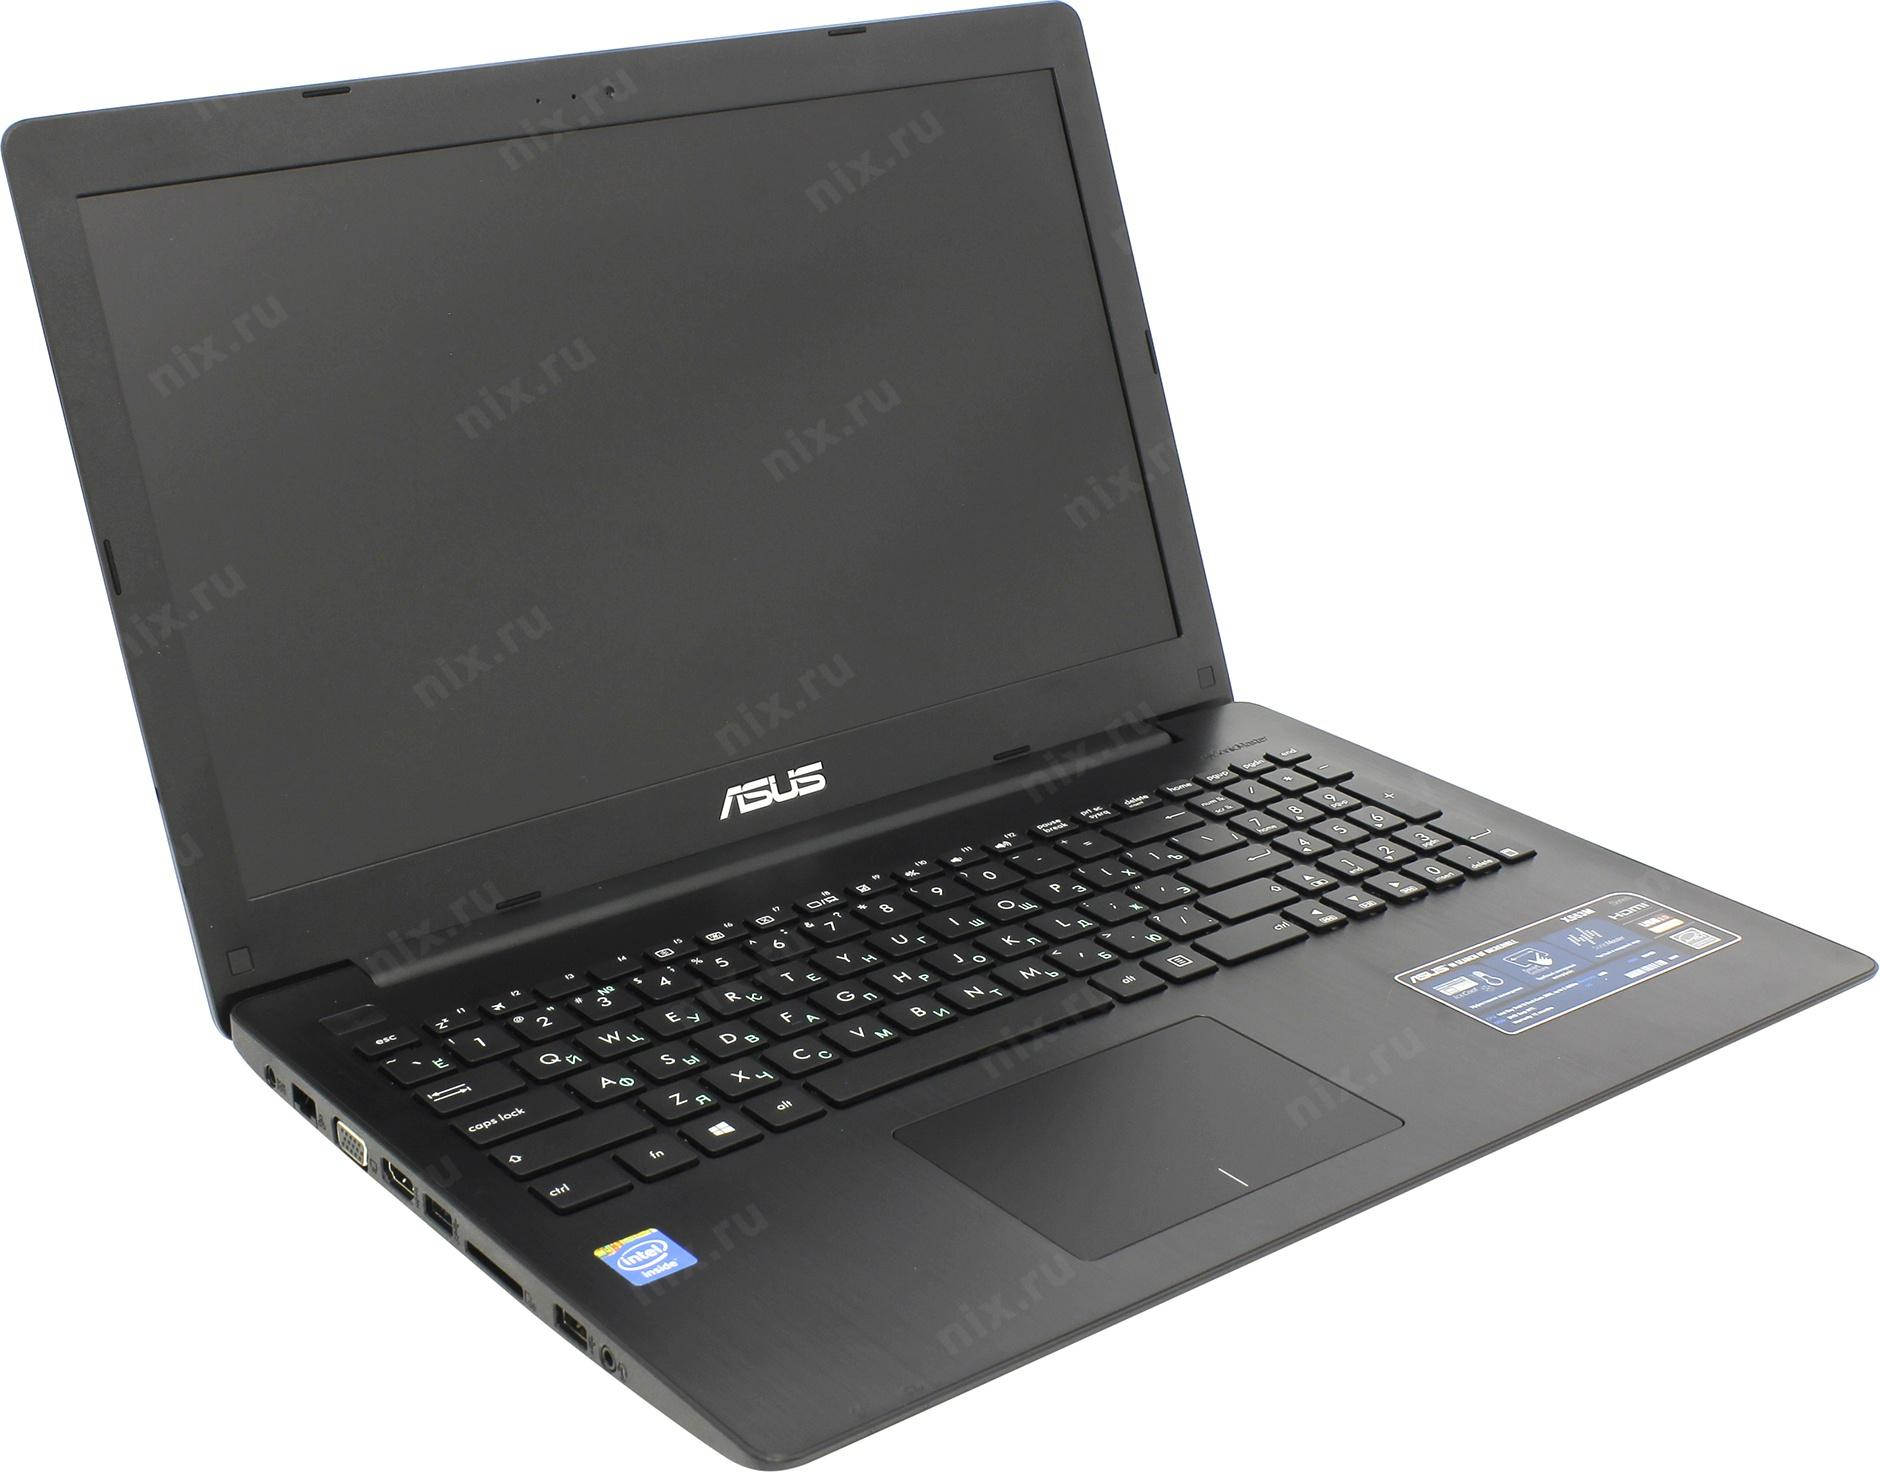 Asus X553m Drivers Windows 10